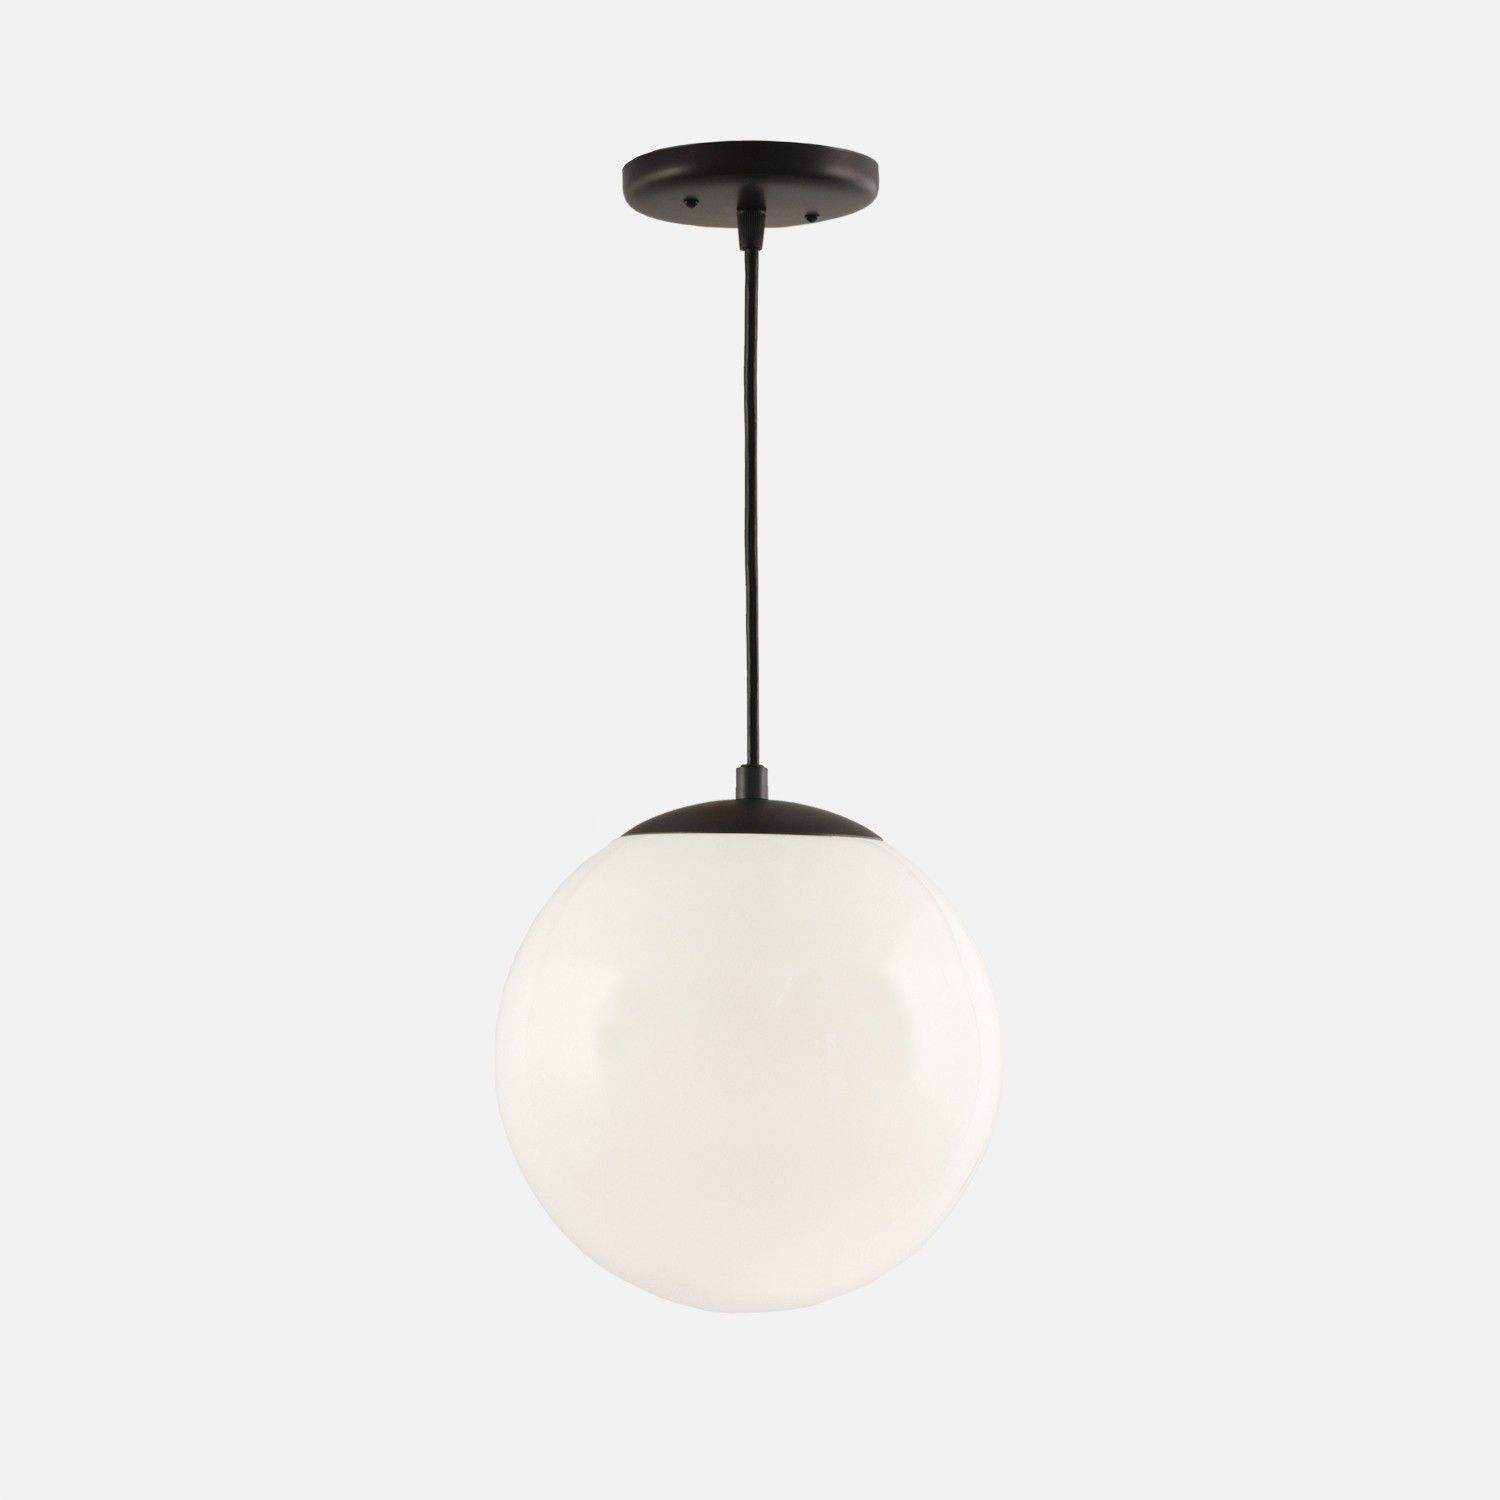 Luna Pendant Light Fixture Made In Oregon By Portland's